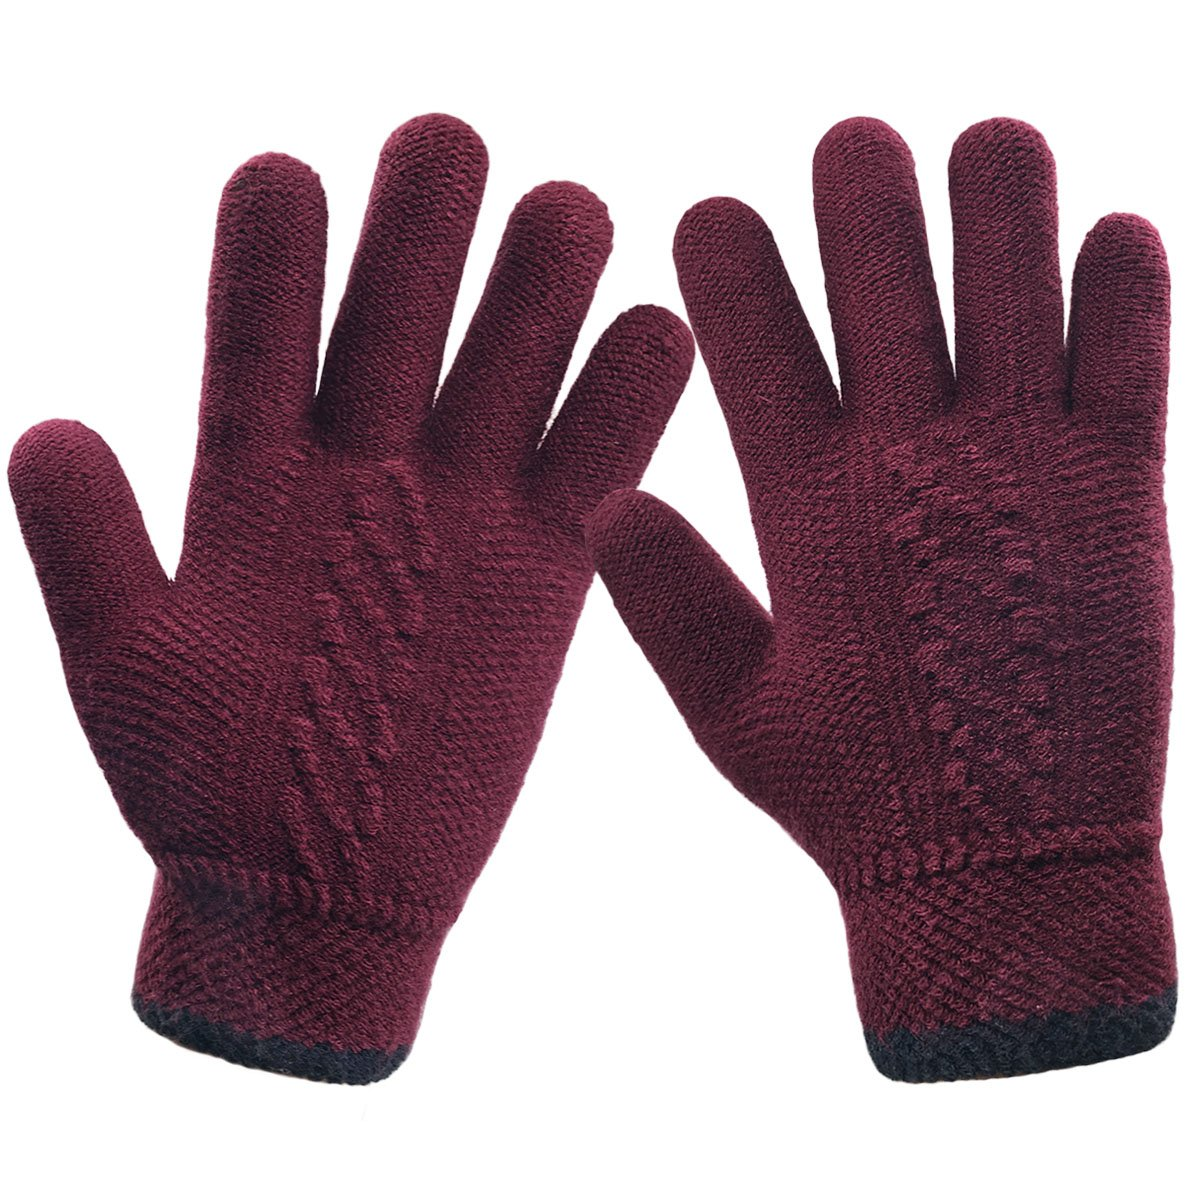 LETHMIK Unique Cuff Winter Gloves Womens Solid Color Warm Knitted Thick Gloves Wine Red